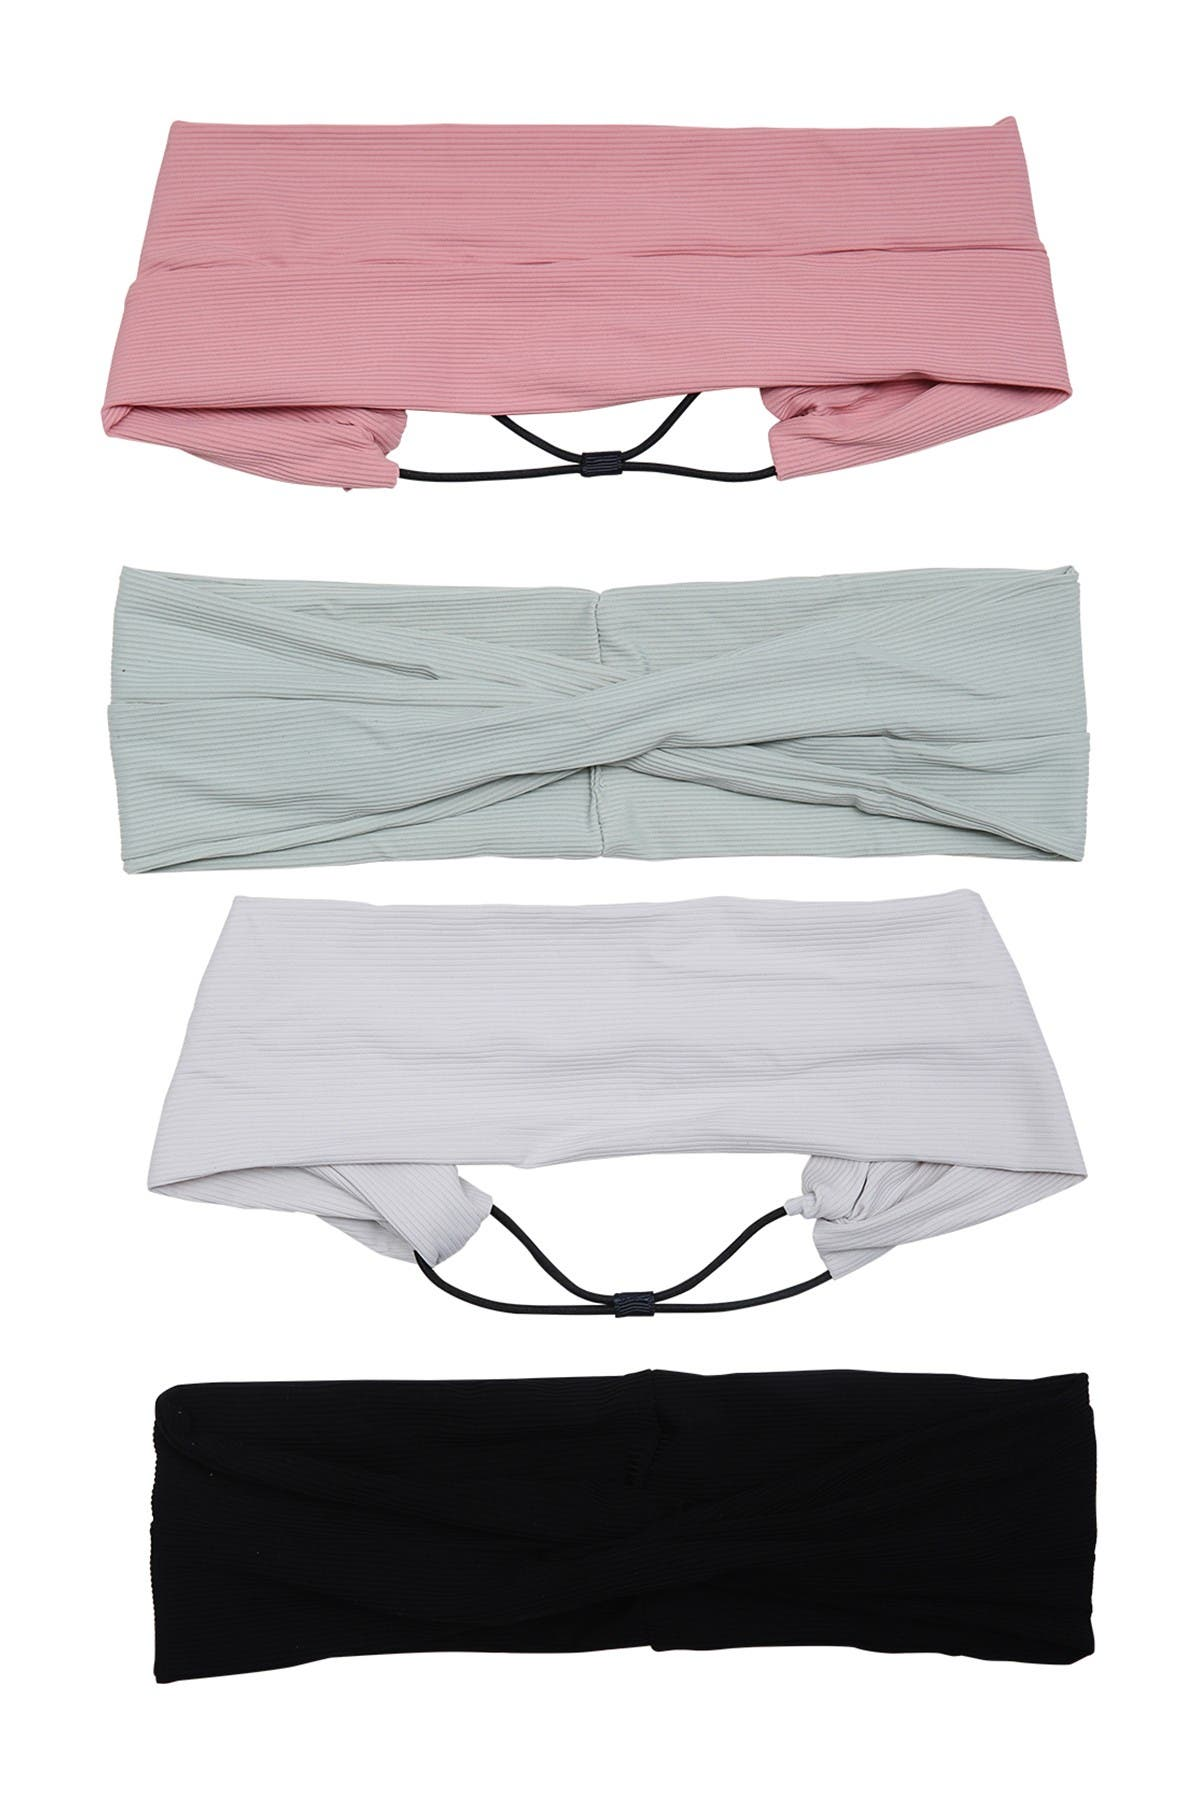 Image of Berry Soft Ribbed Headwrap Set - Pack of 4